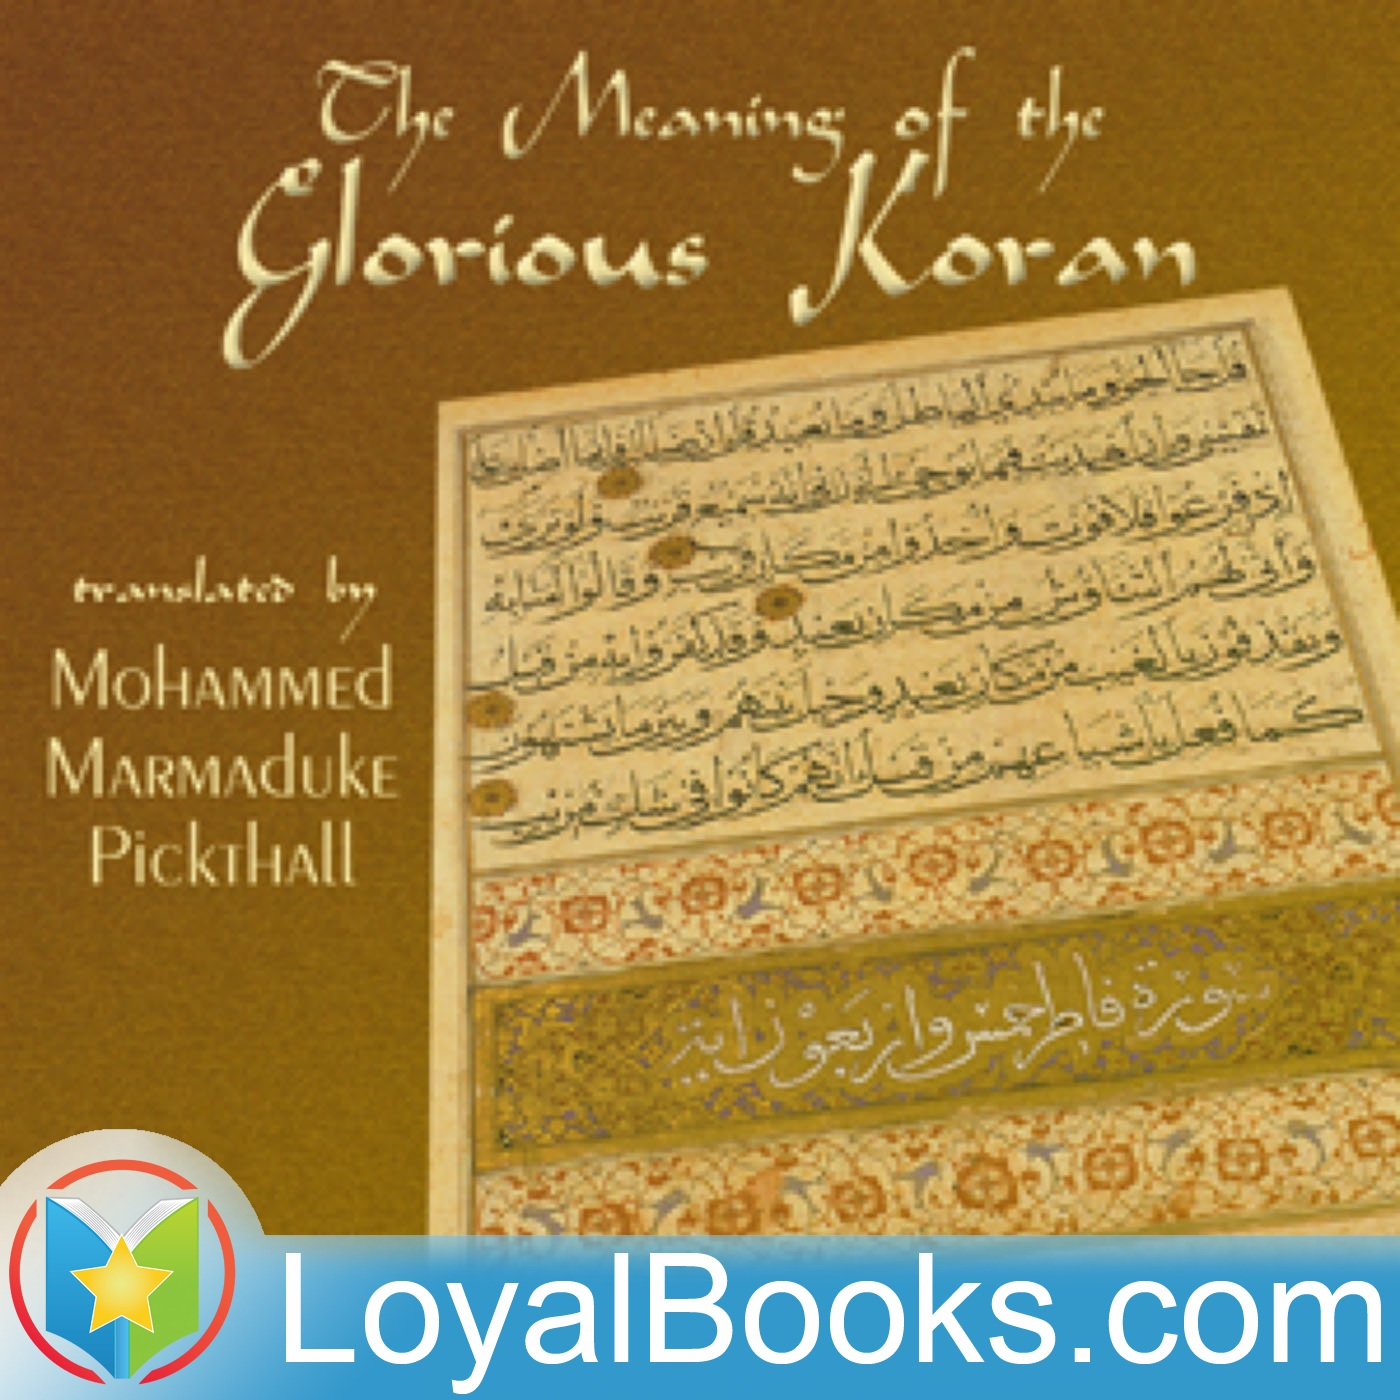 <![CDATA[The Meaning of the Glorious Koran by Unknown]]>